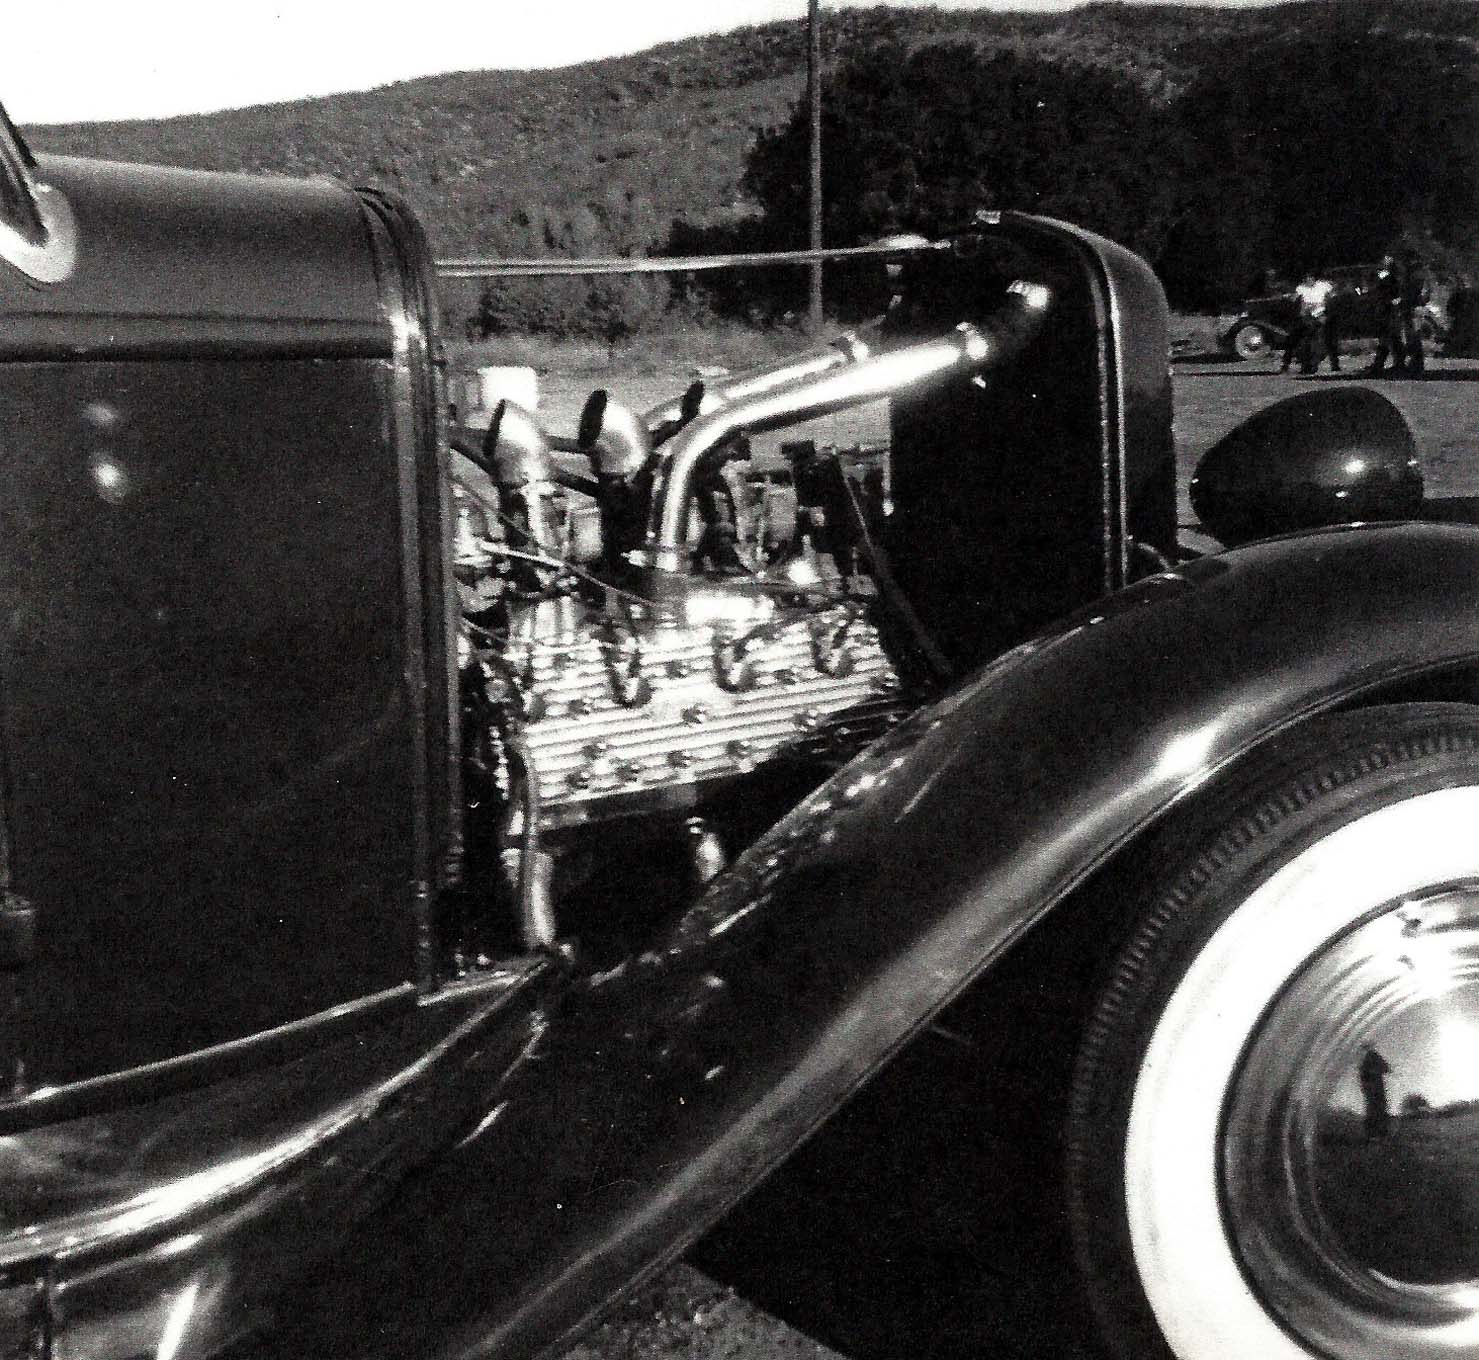 """Skip's 3/8ths by 3/8ths 296ci flathead had all the whips, whistles, and balloons: Weiand intake manifold, Navarro heads, and a Kong (Jackson) ignition. """"You could advance the ignition from inside the car,"""" Skip recalls."""